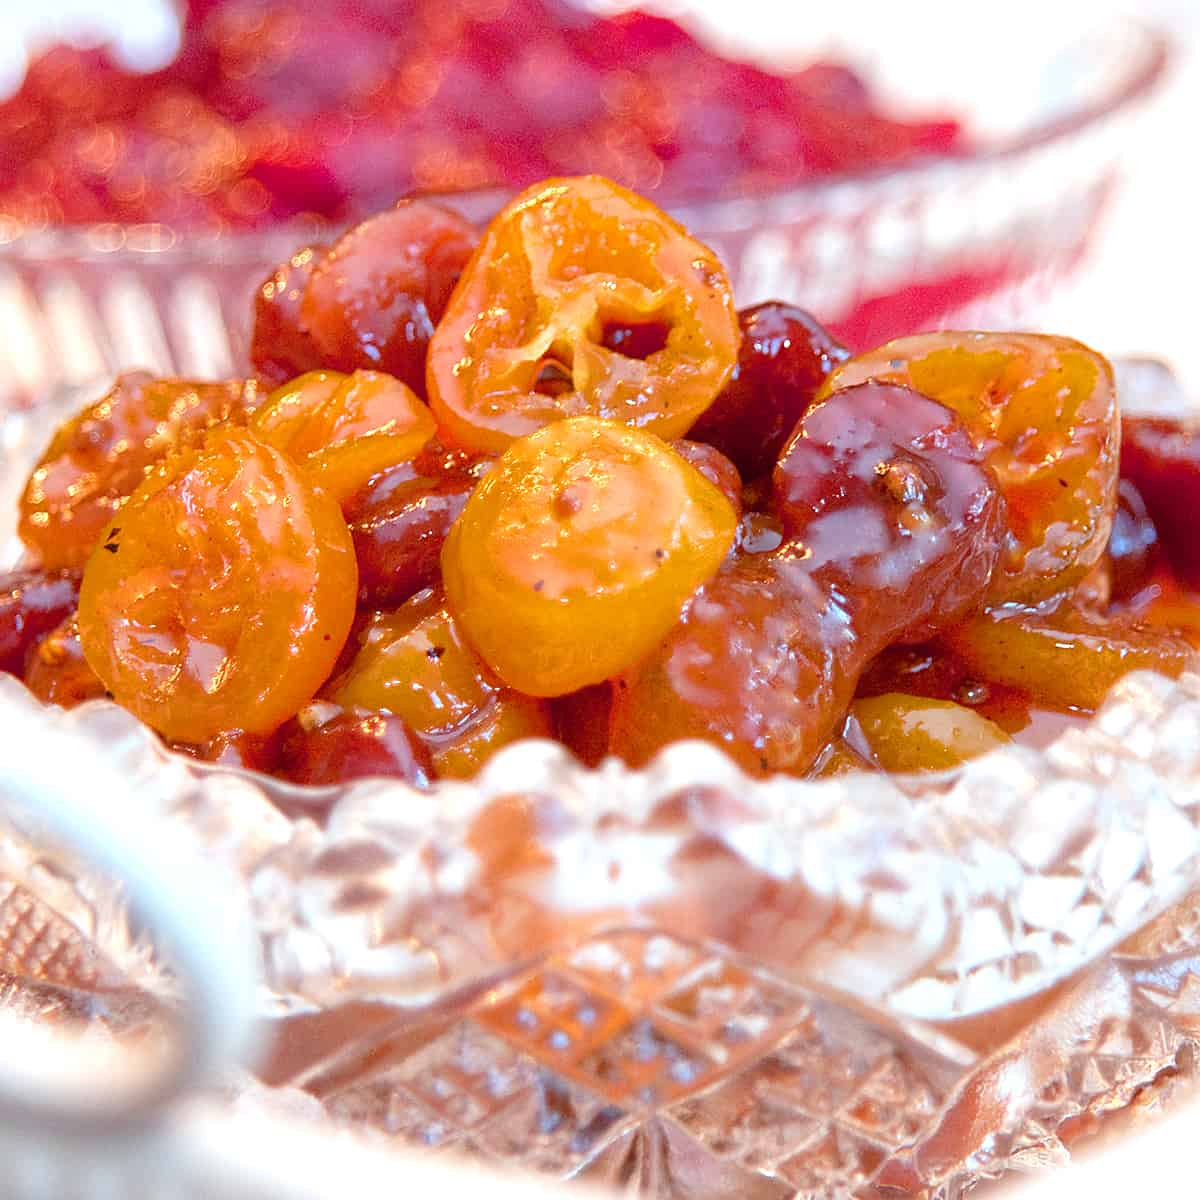 Kumquat and Dried Cherry Chutney in a cut glass serving dish.